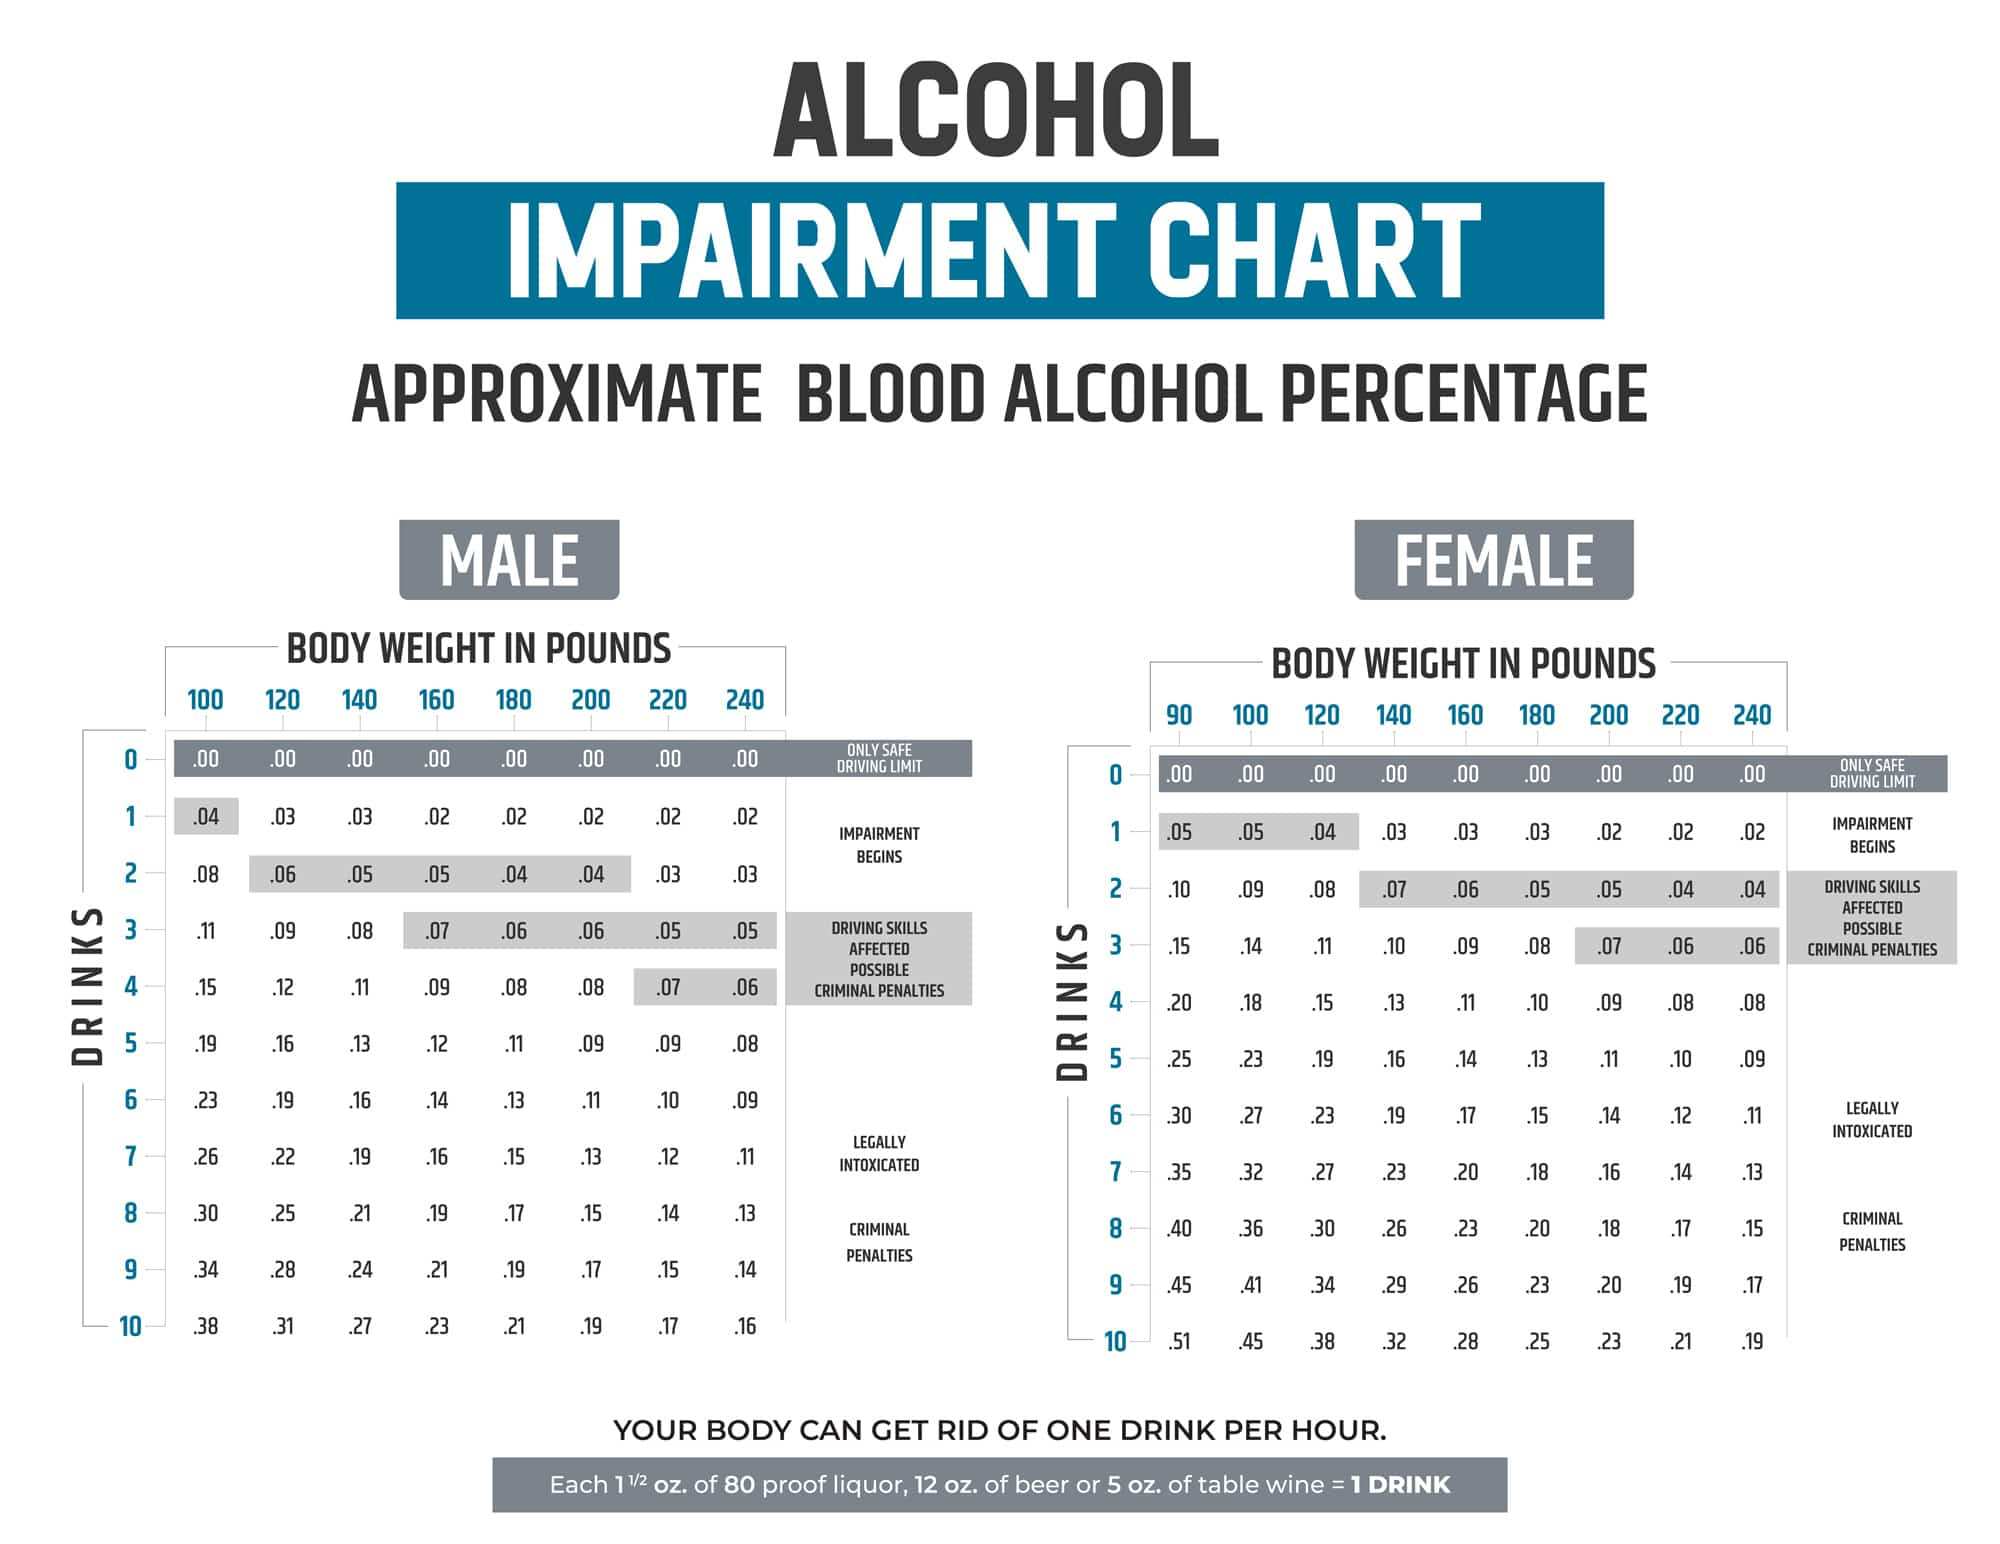 Alcohol Impairment Chart - Approximate Blood Alcohol Percentage